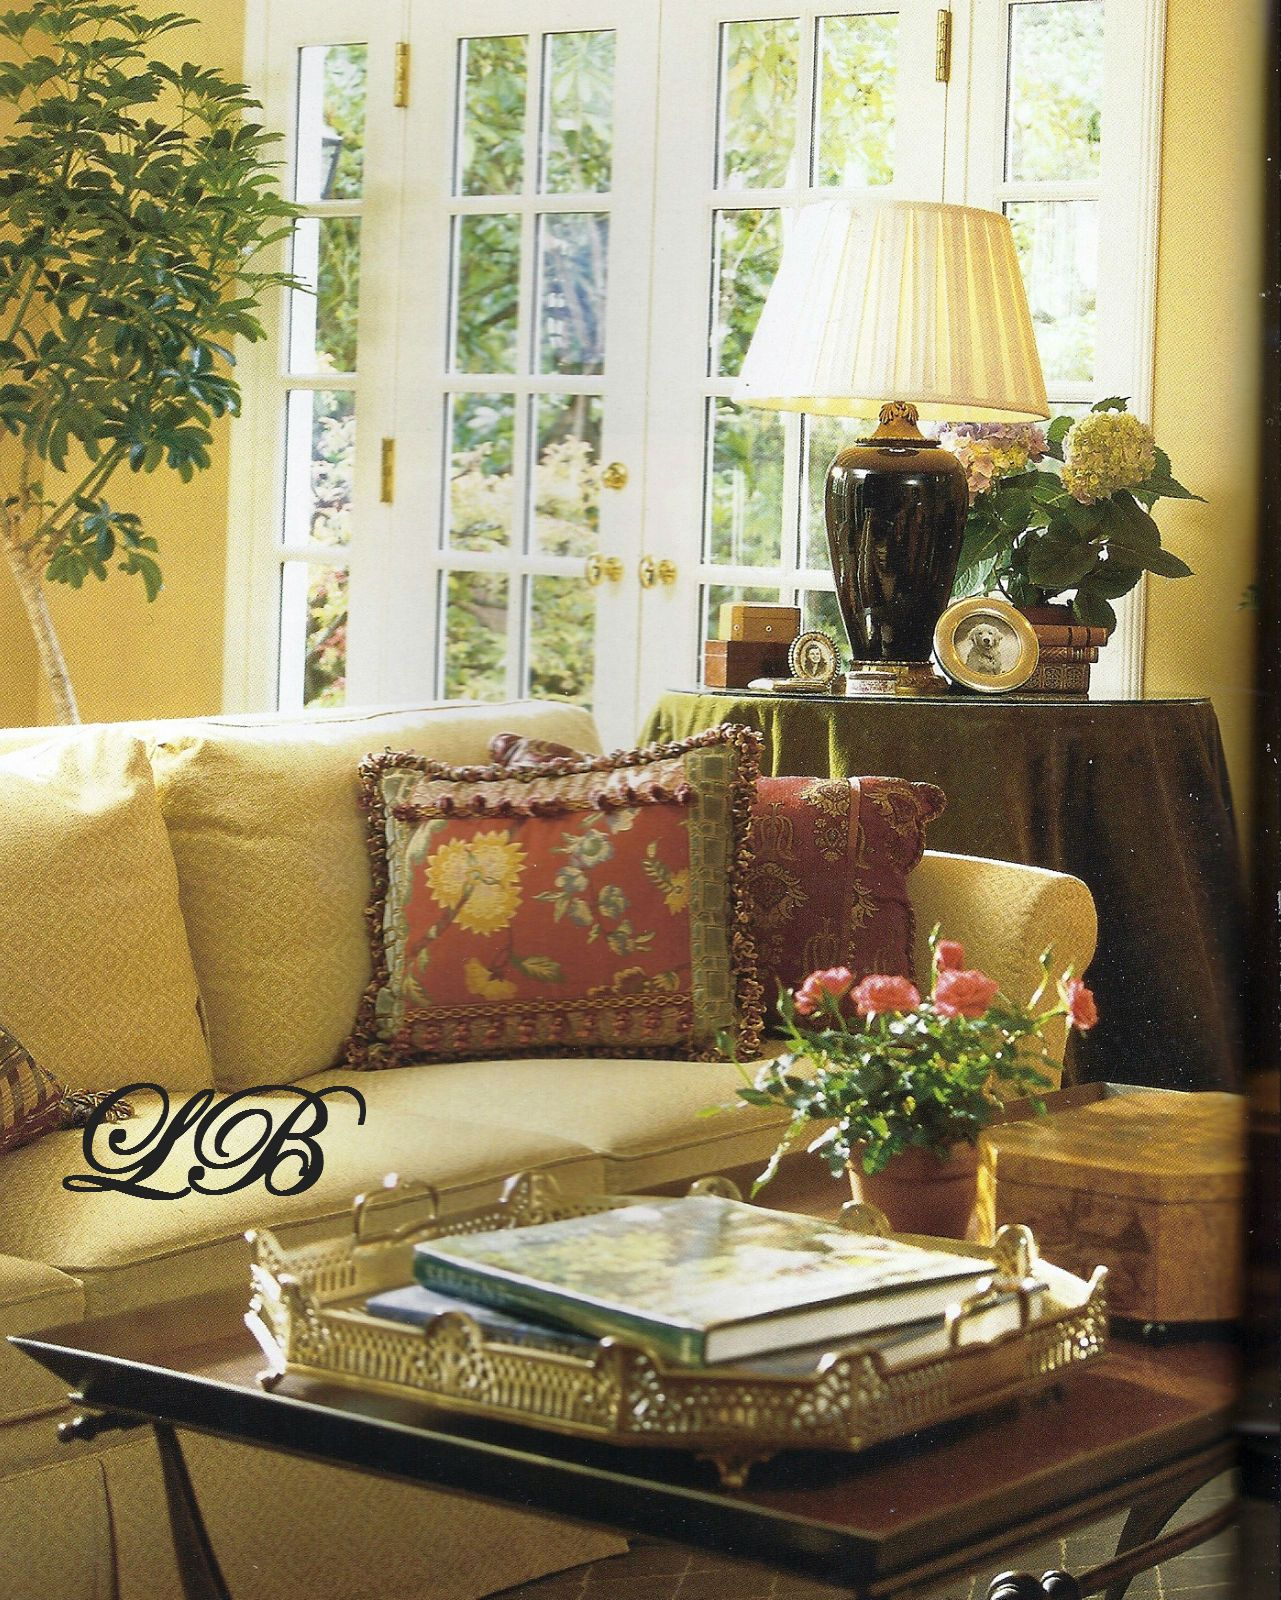 Warm Home Decor: Warm Color Scheme, Lots Of Natural Light, Layering...so